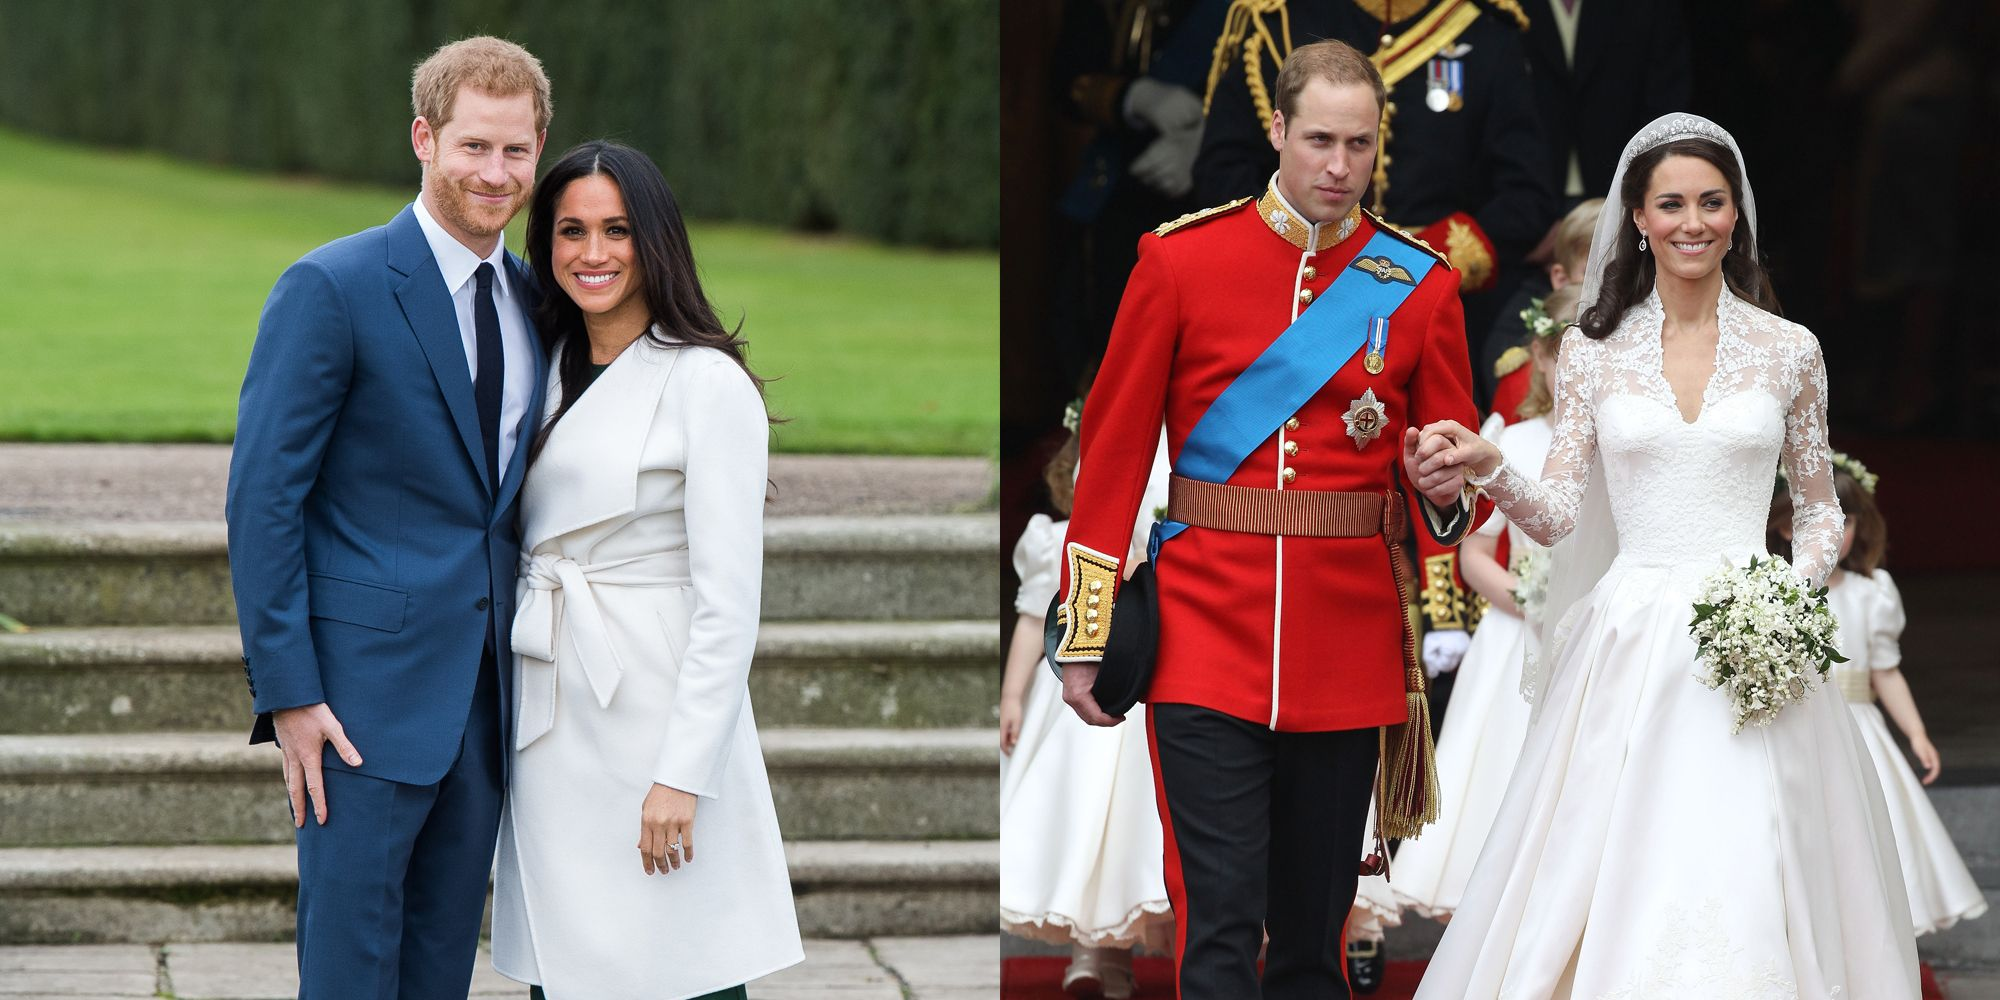 Prince Harry And Meghan Markles Wedding Compared To Prince William